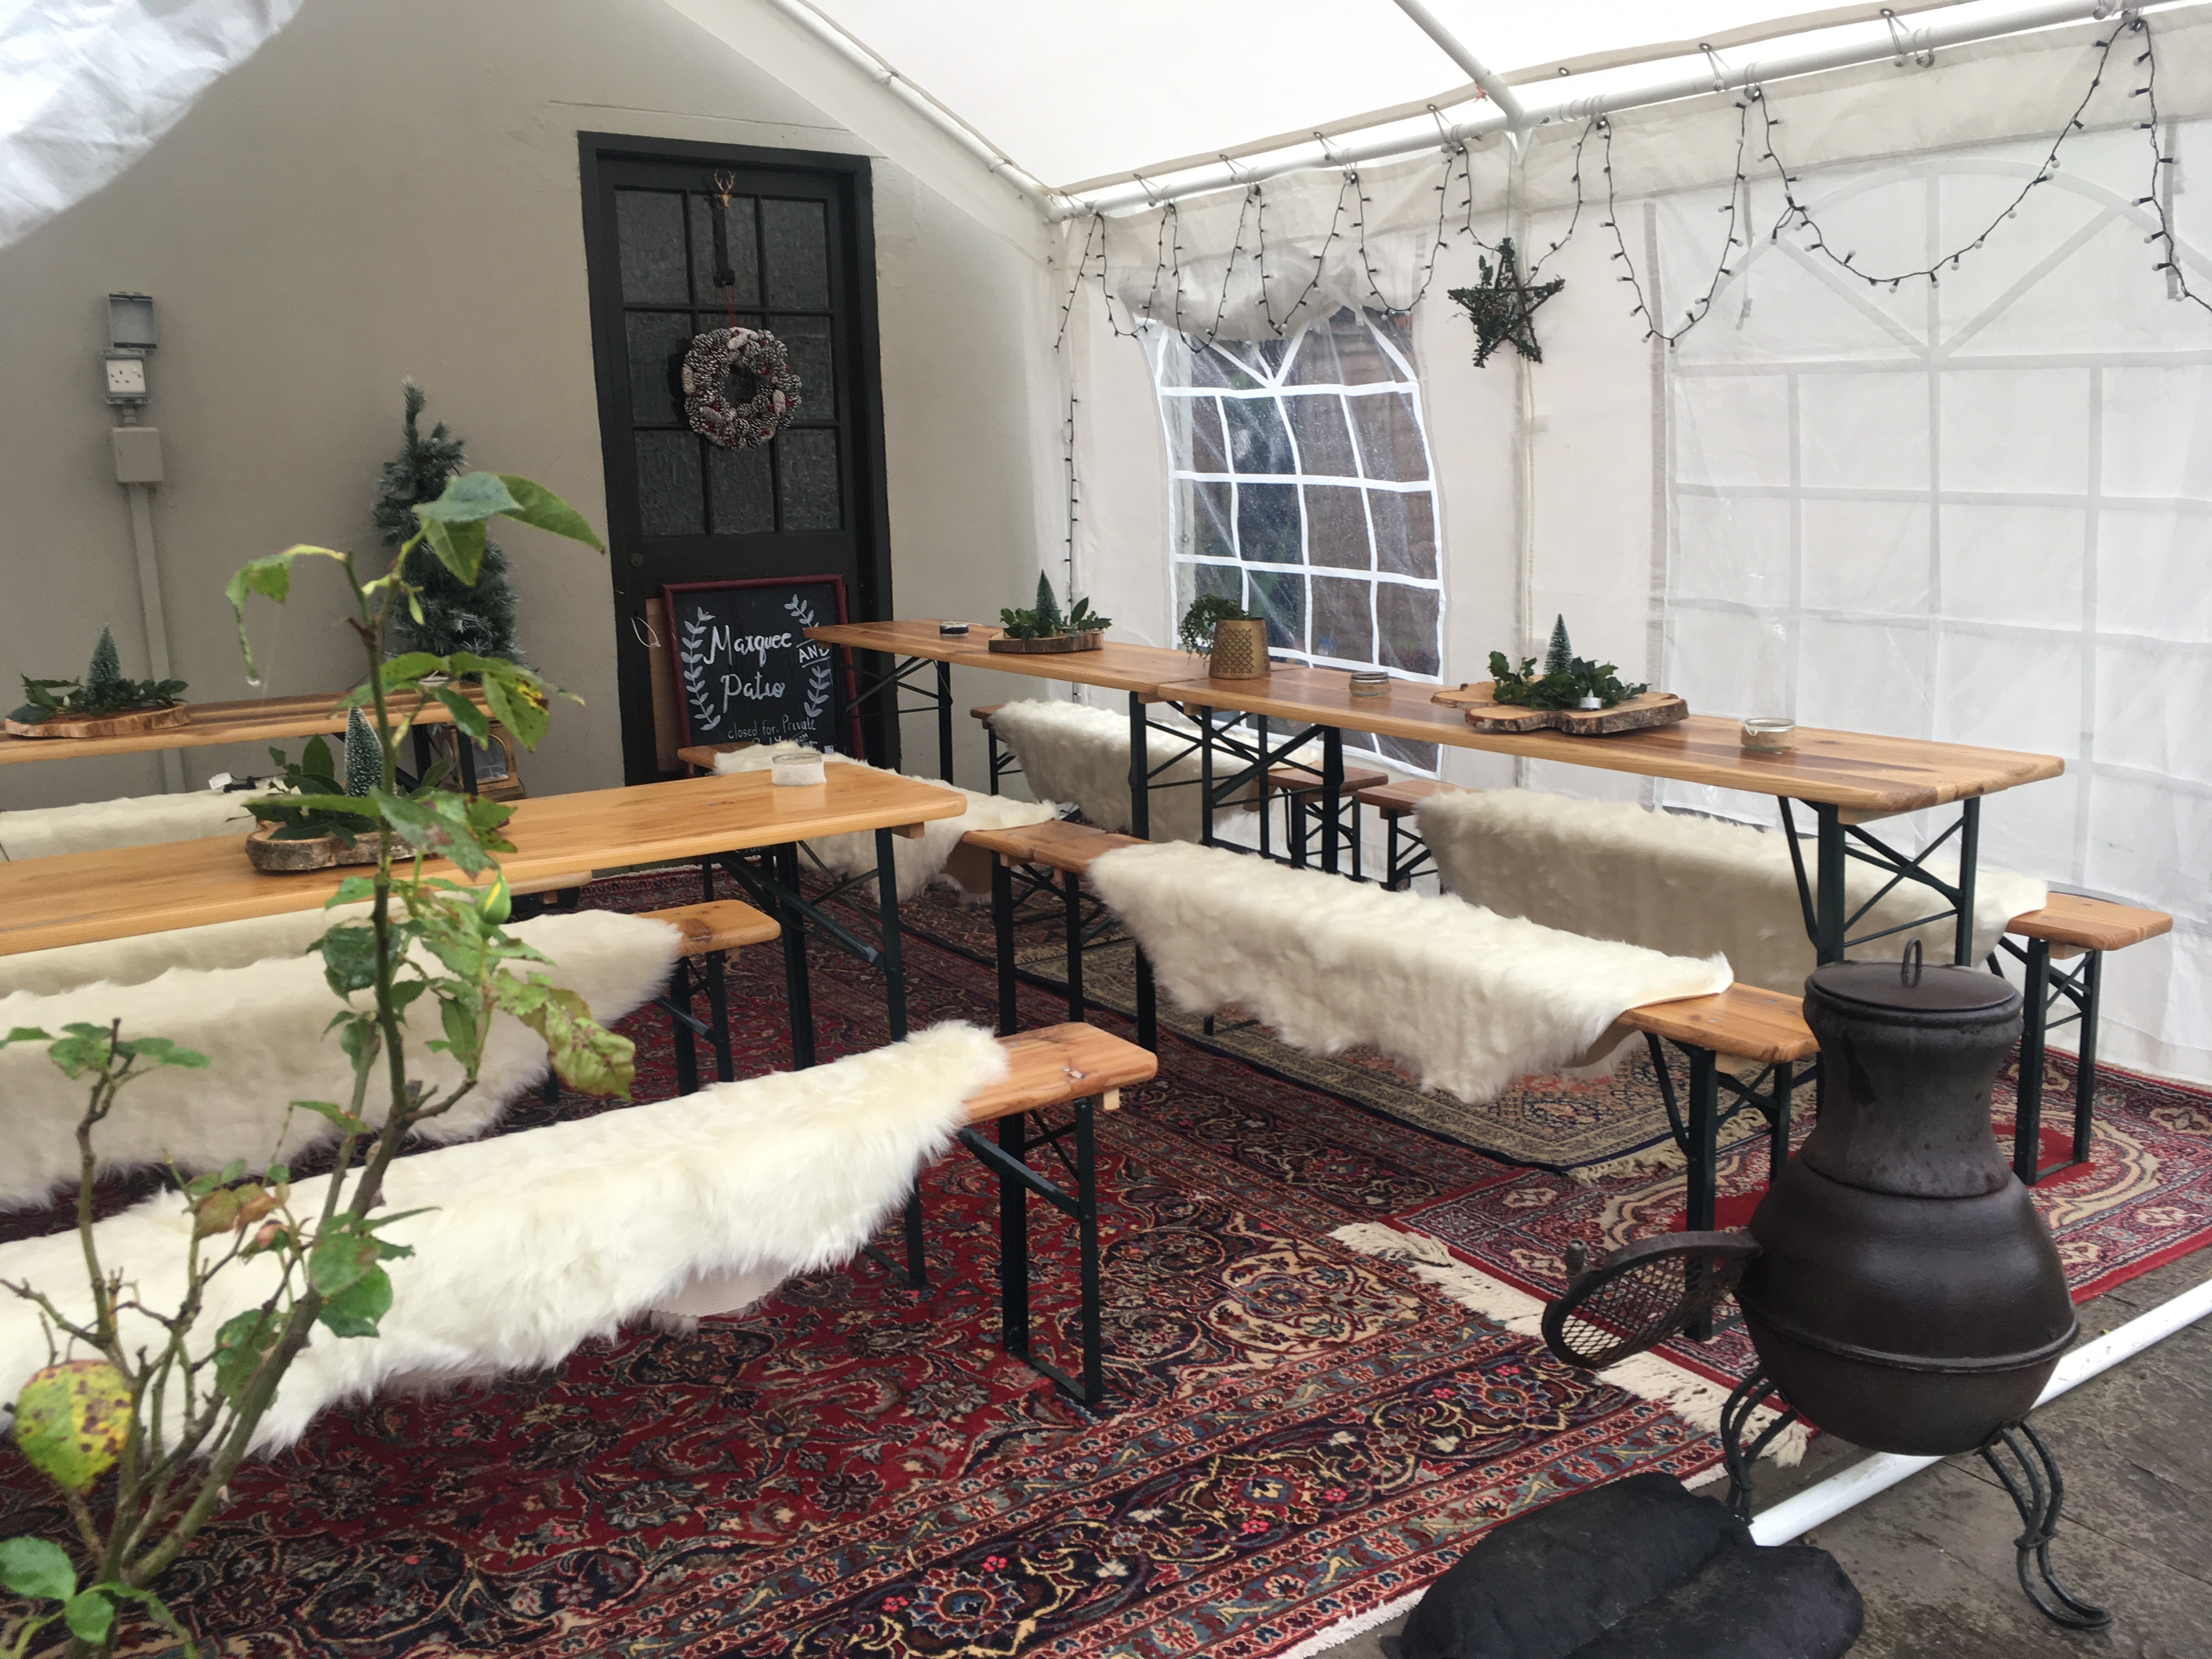 Hire our Christmas Grotto! Ringwood Railway- Beer Tent